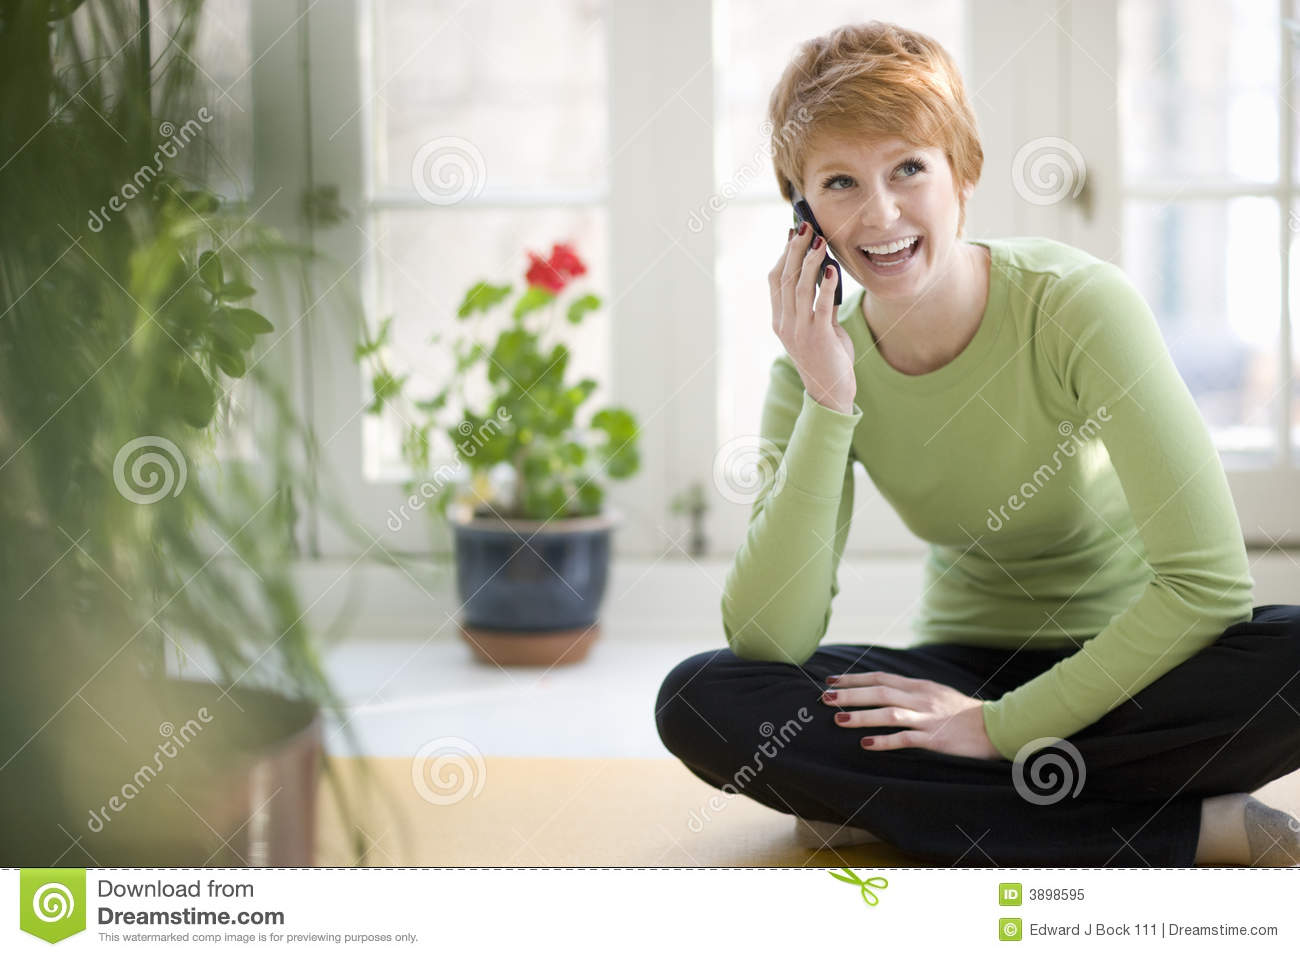 Cell phone smiling woman